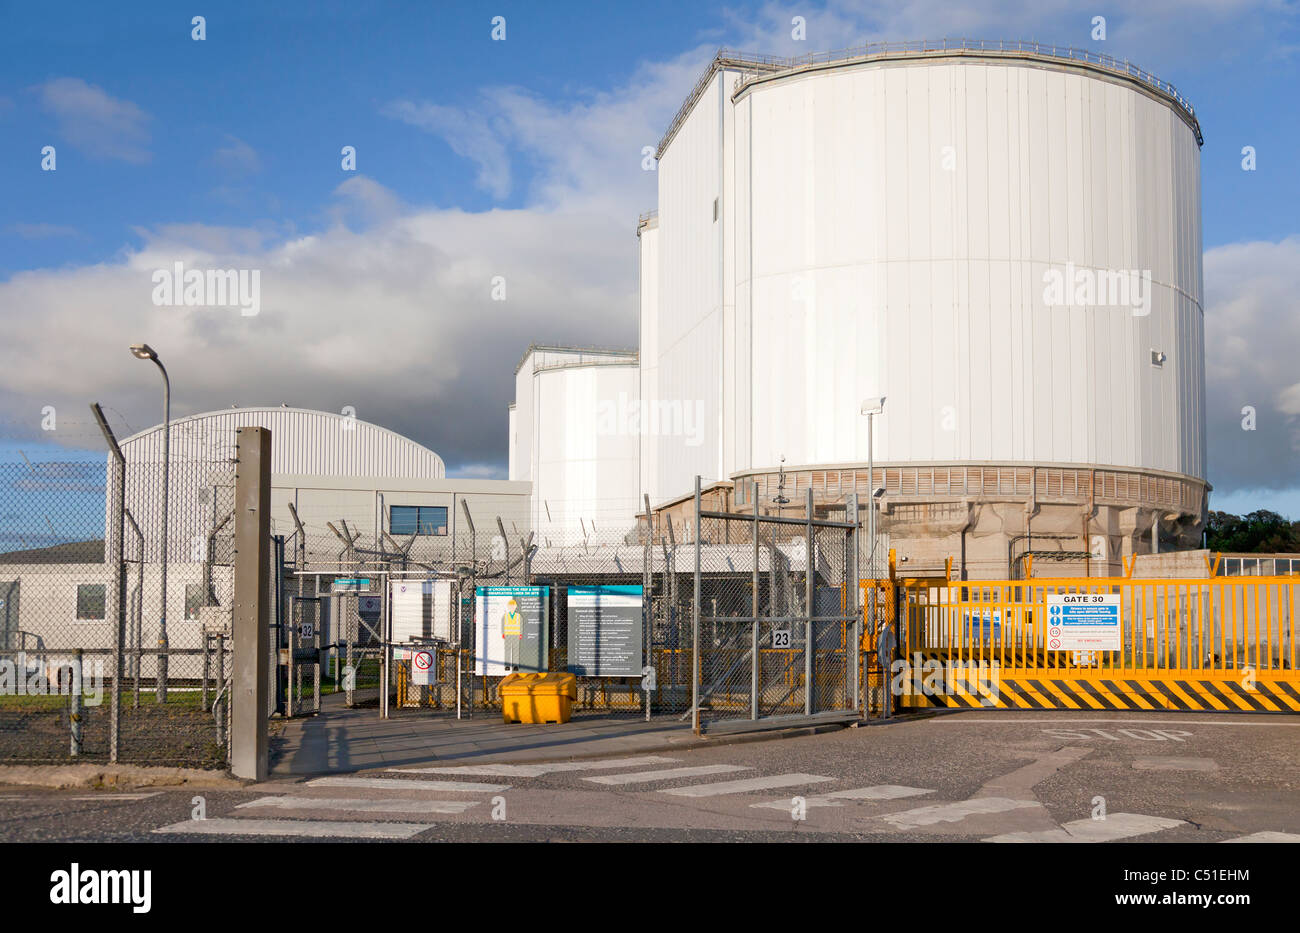 Entrance to the Hunterston A Nuclear Power Station (being decommissioned) in North Ayrshire, Scotland, UK - Stock Image